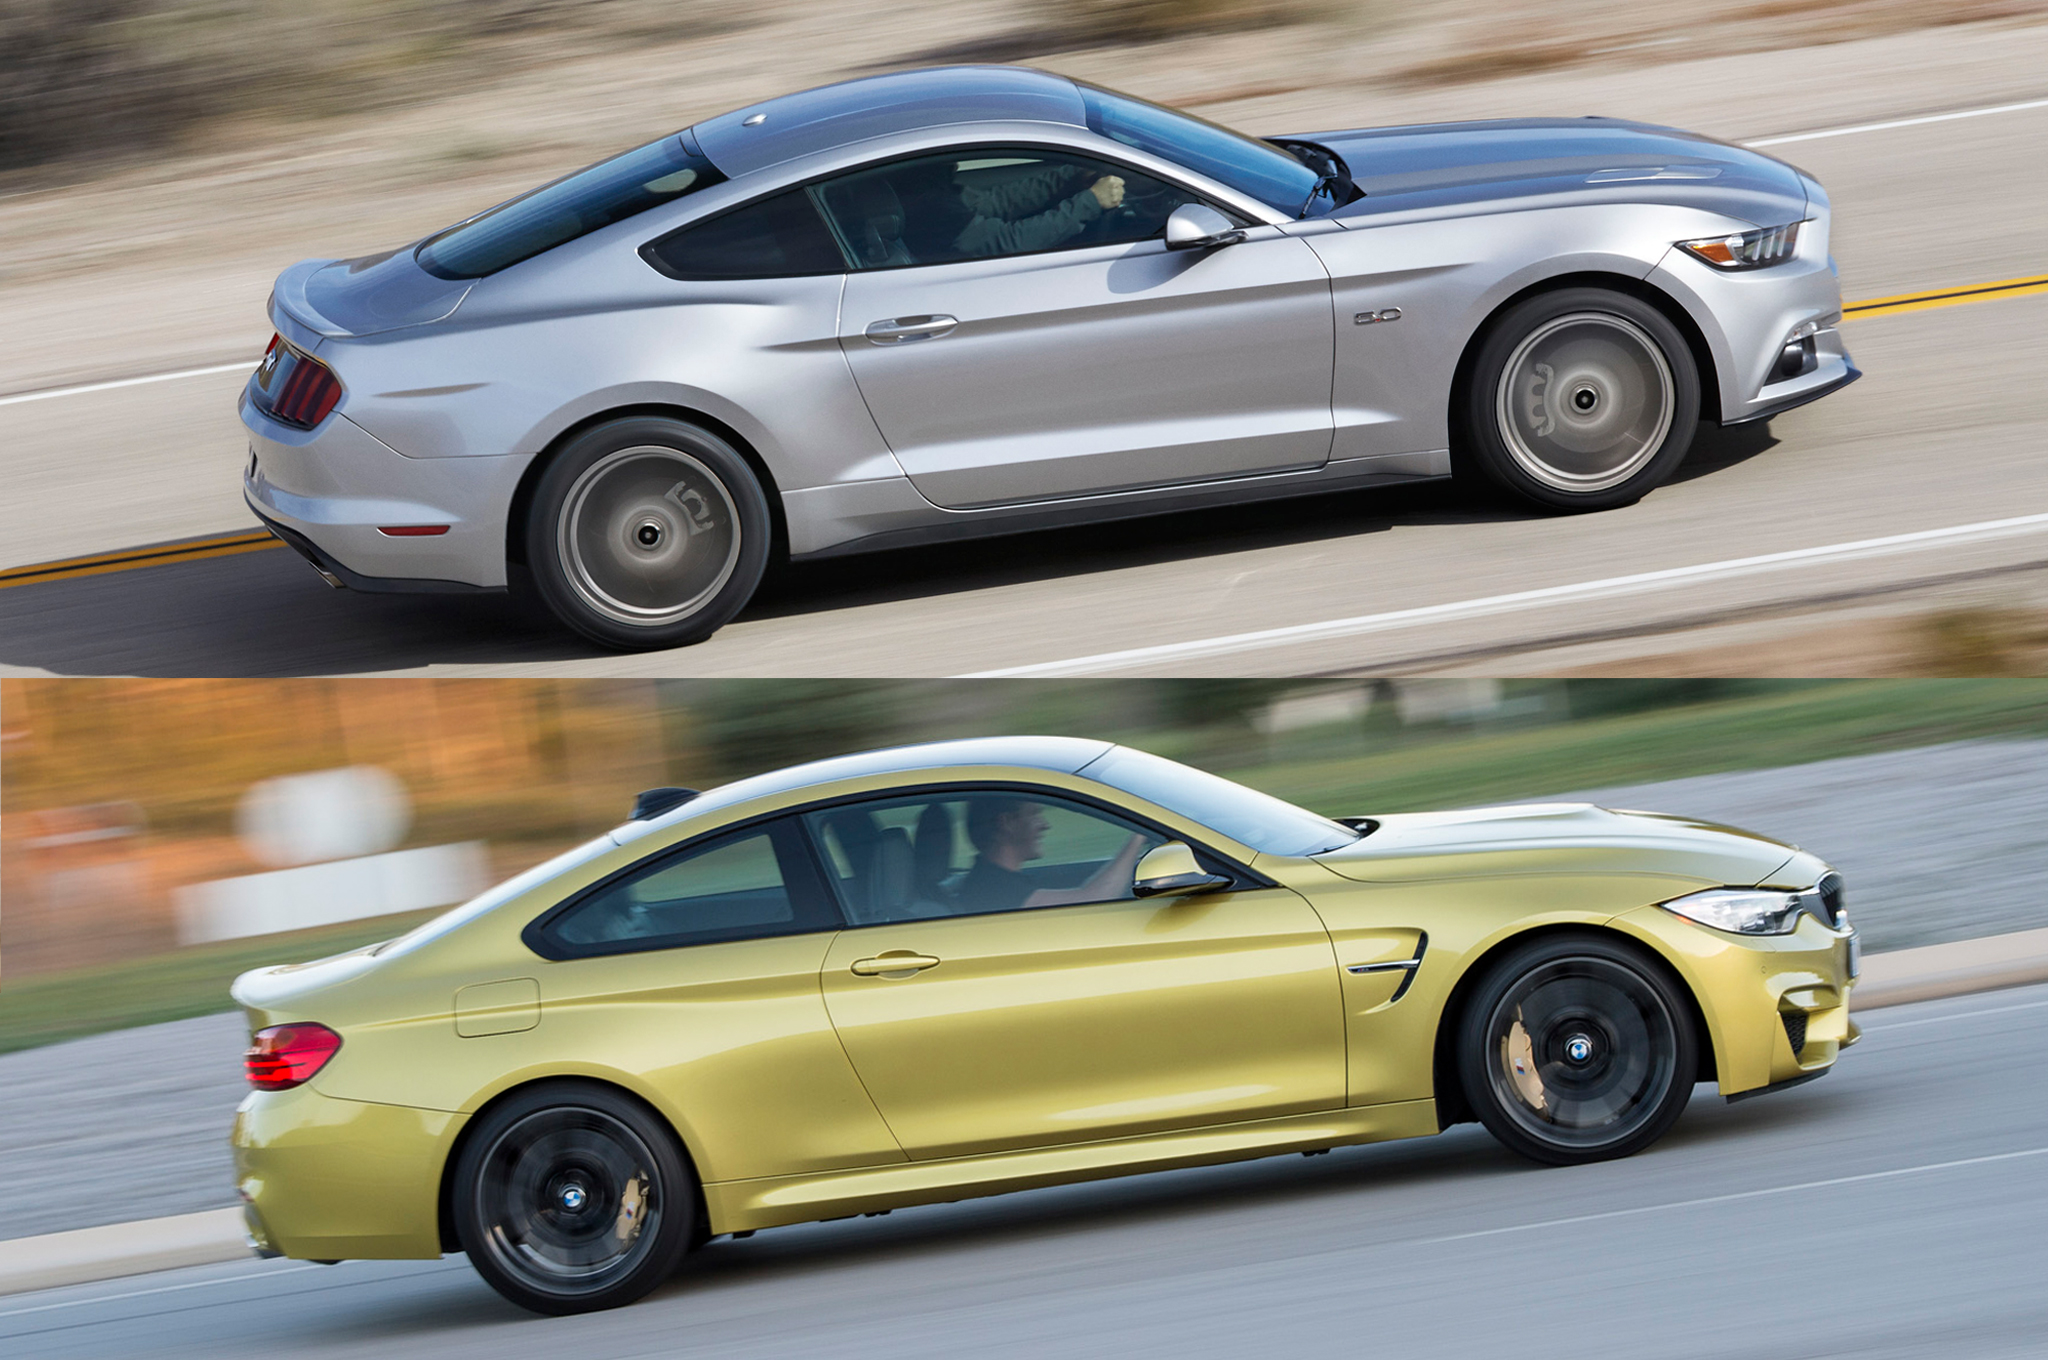 Totd you pick 2015 ford mustang gt or 2015 bmw m4